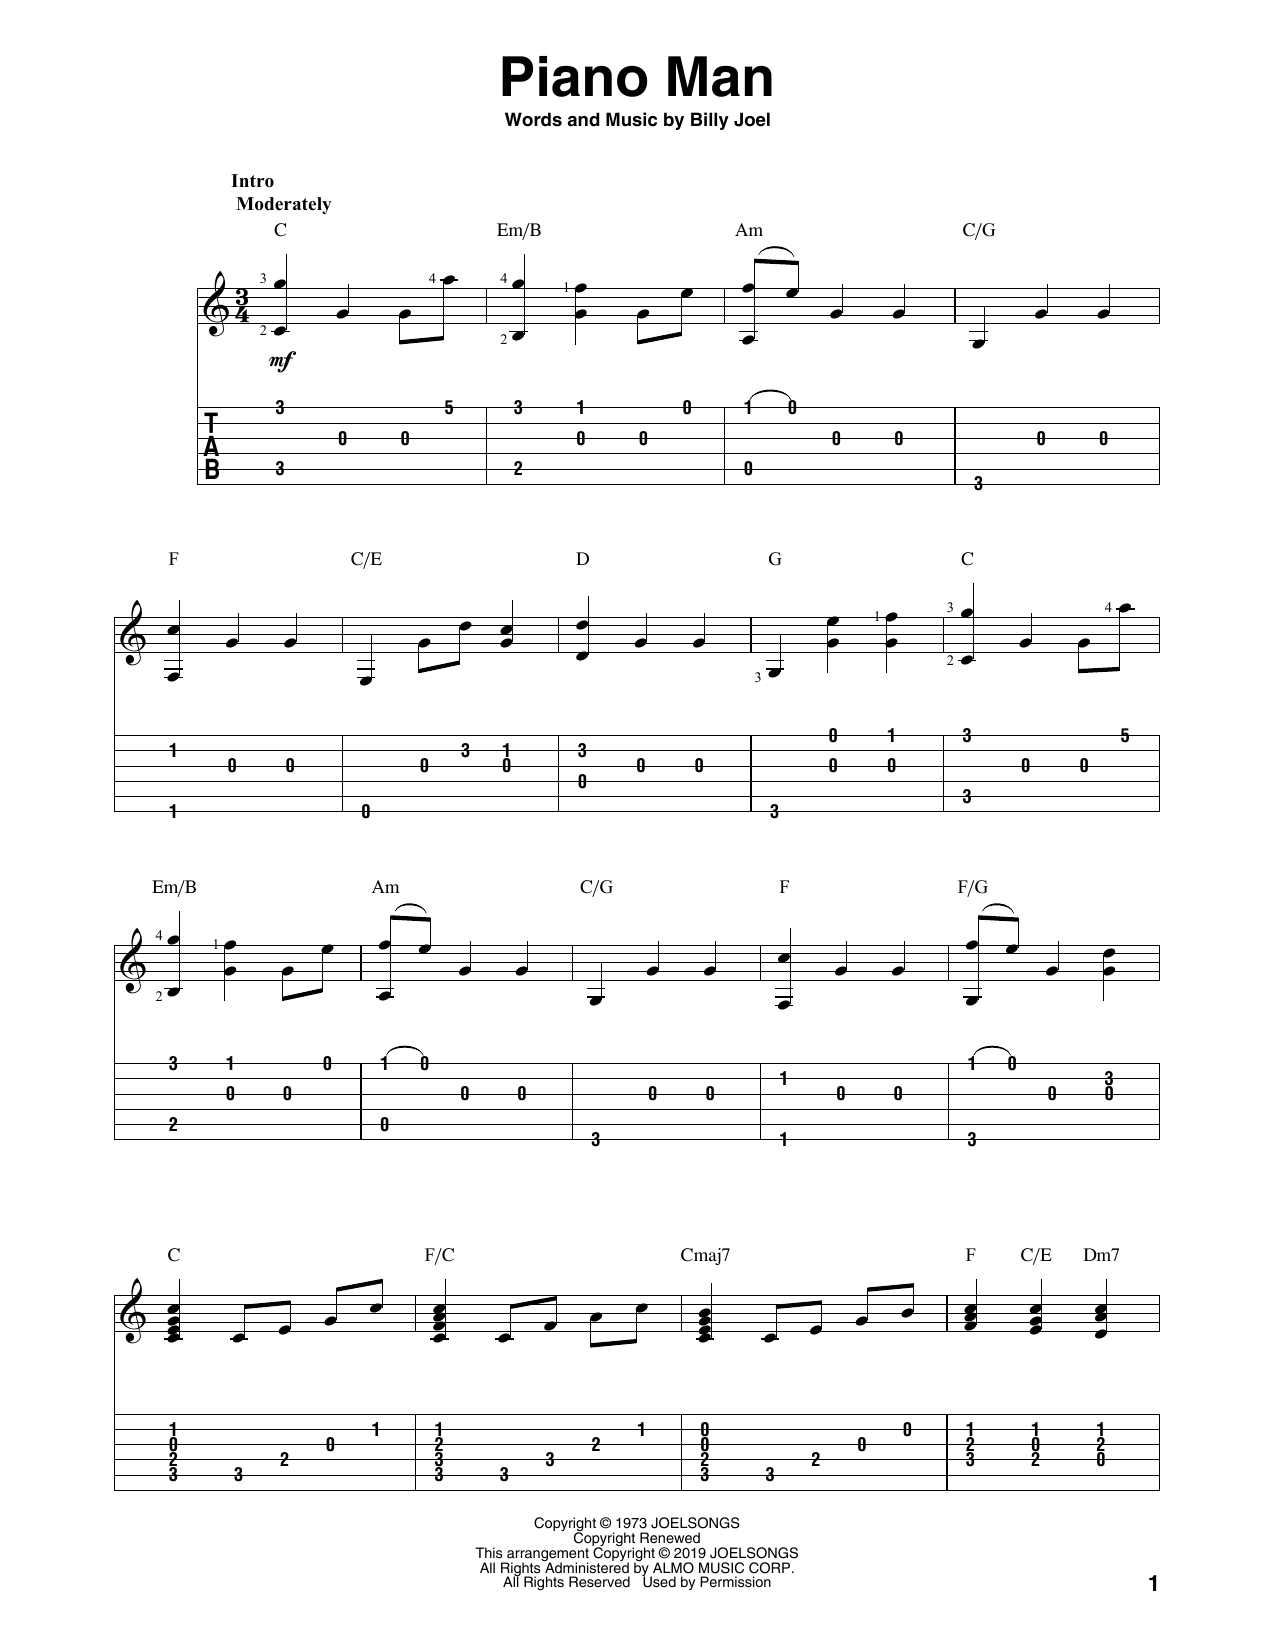 Piano Man Chords Billy Joel Piano Man Sheet Music Notes Chords Download Printable Solo Guitar Tab Sku 414571